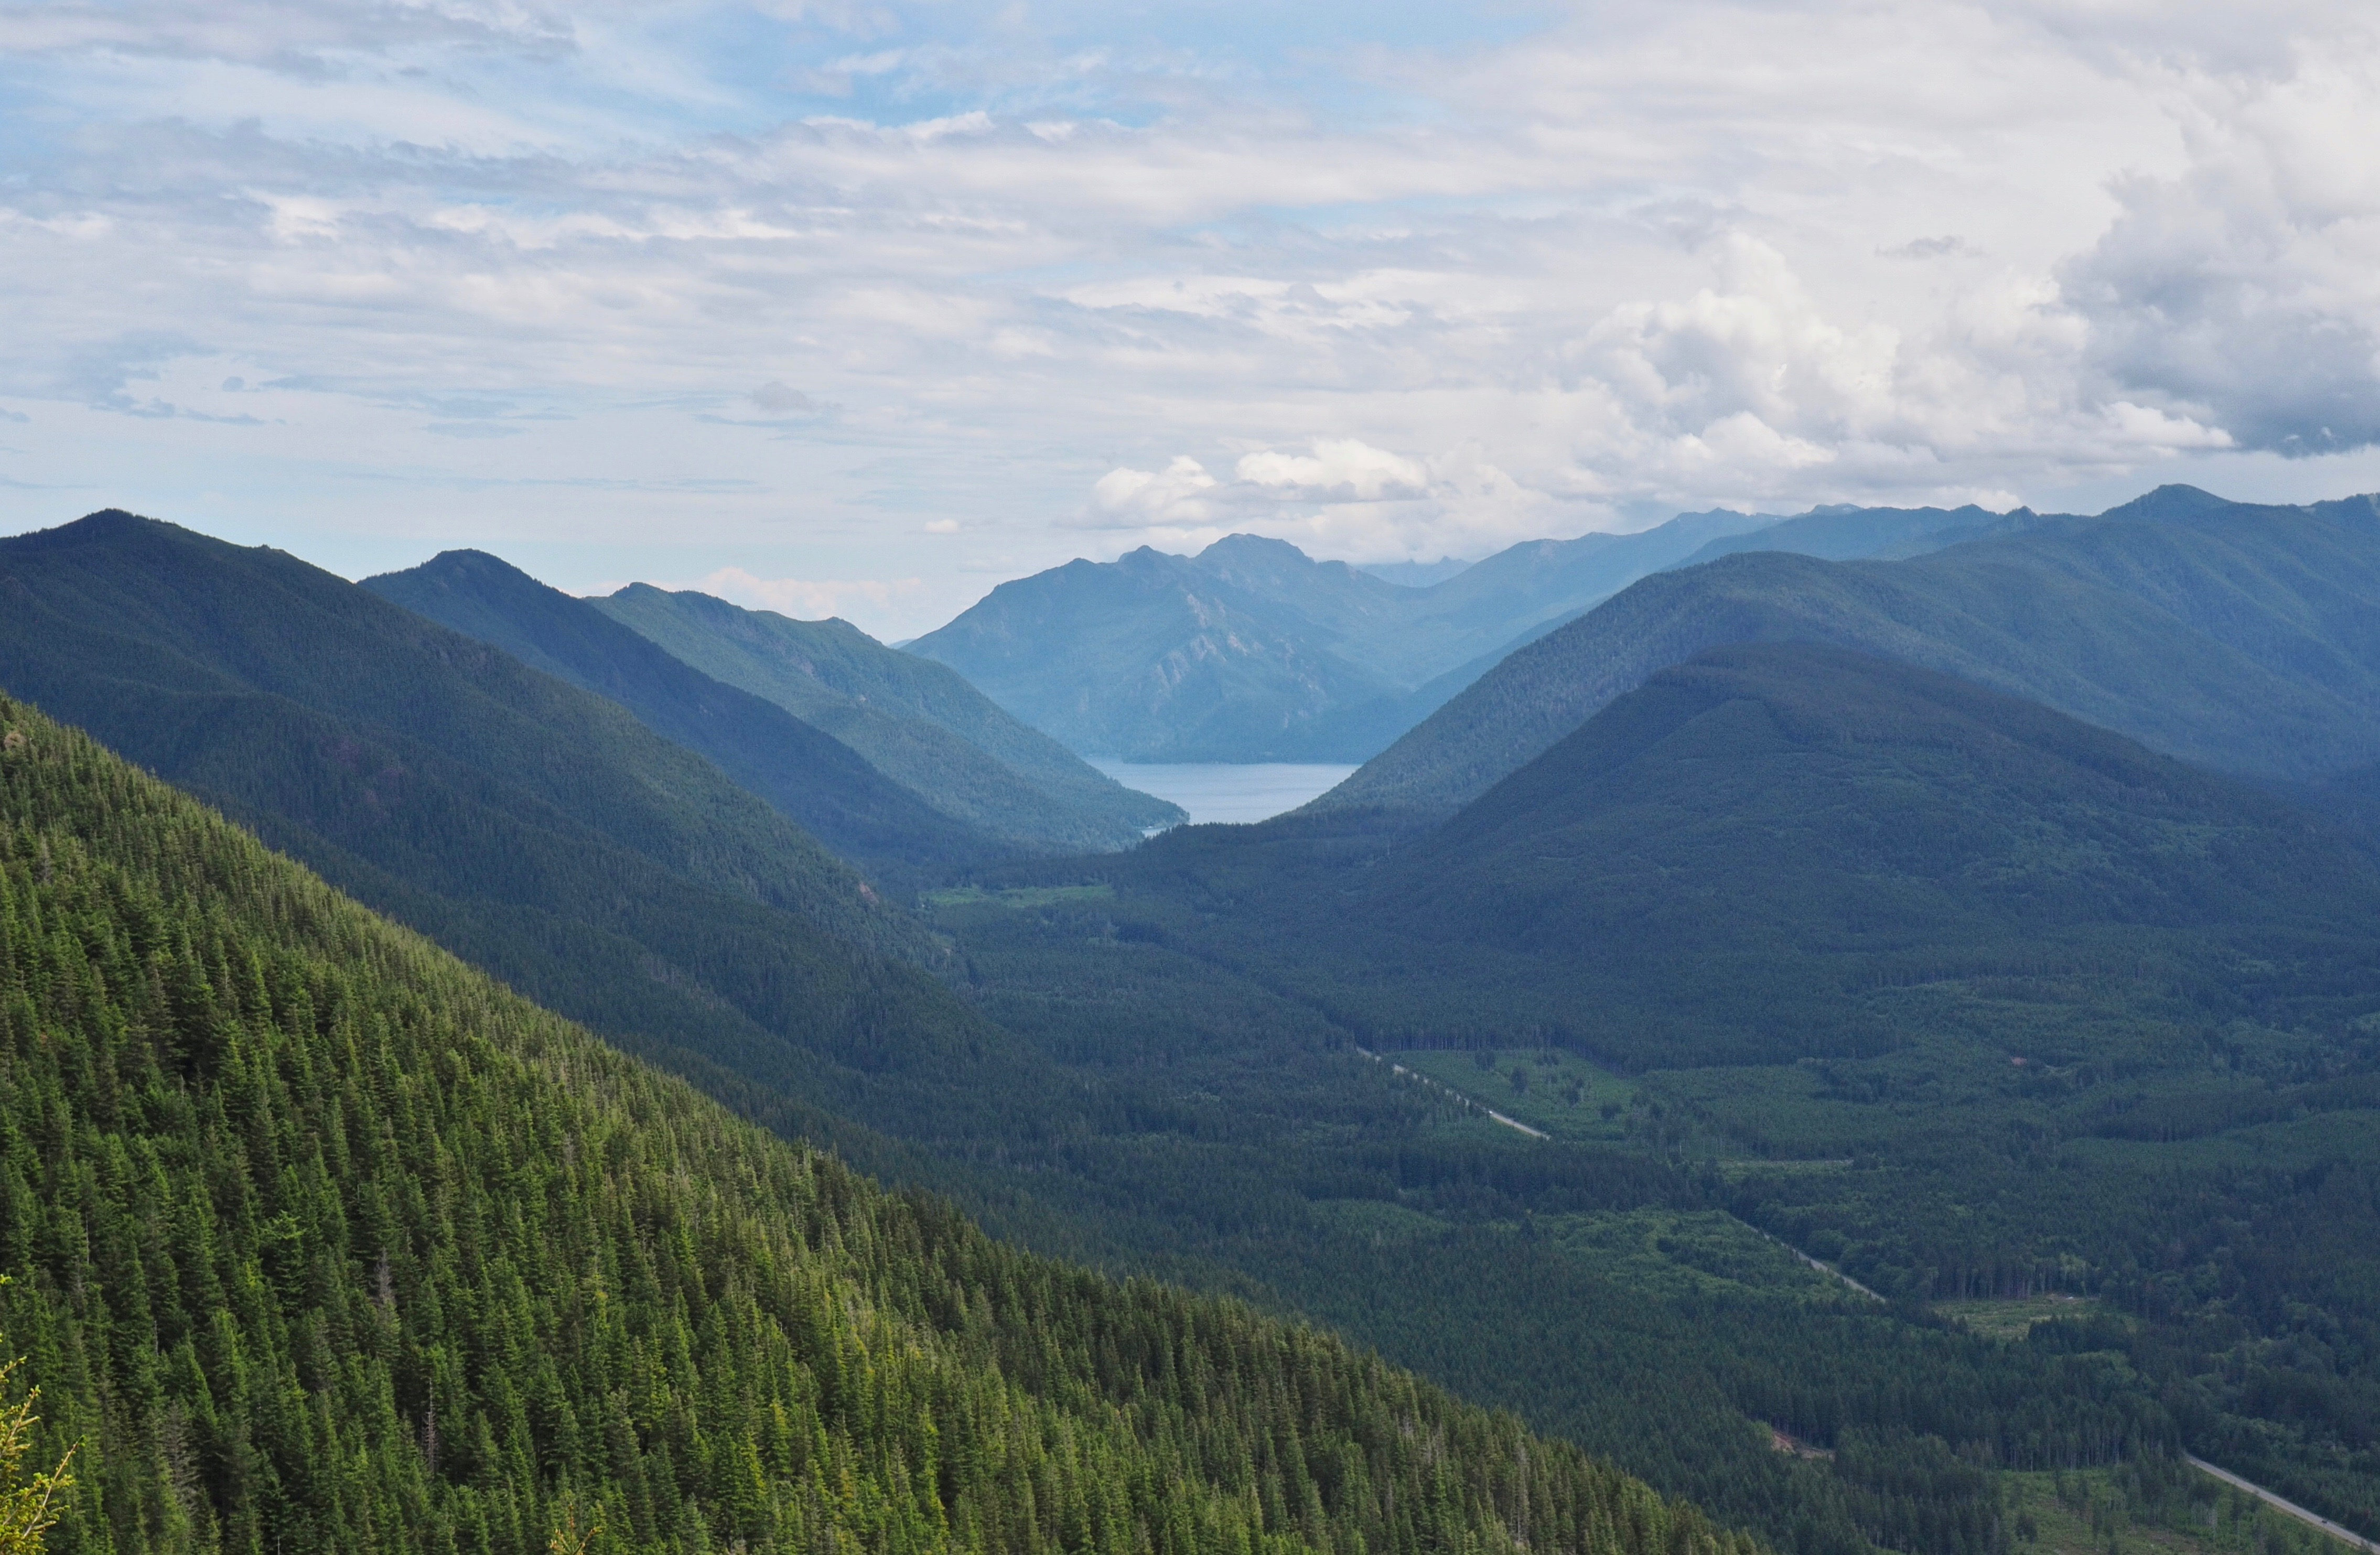 In the lookout's eastern view, Lake Crescent lies cradled in its mountain fold. Mount Muller lies midway down the ridge on the left and can be reached by taking the Snider Ridge Trail from the North Point Loop that begins just below Kloshe Nanitch. Kloshe Nanitch Trail, June 17, 2016.